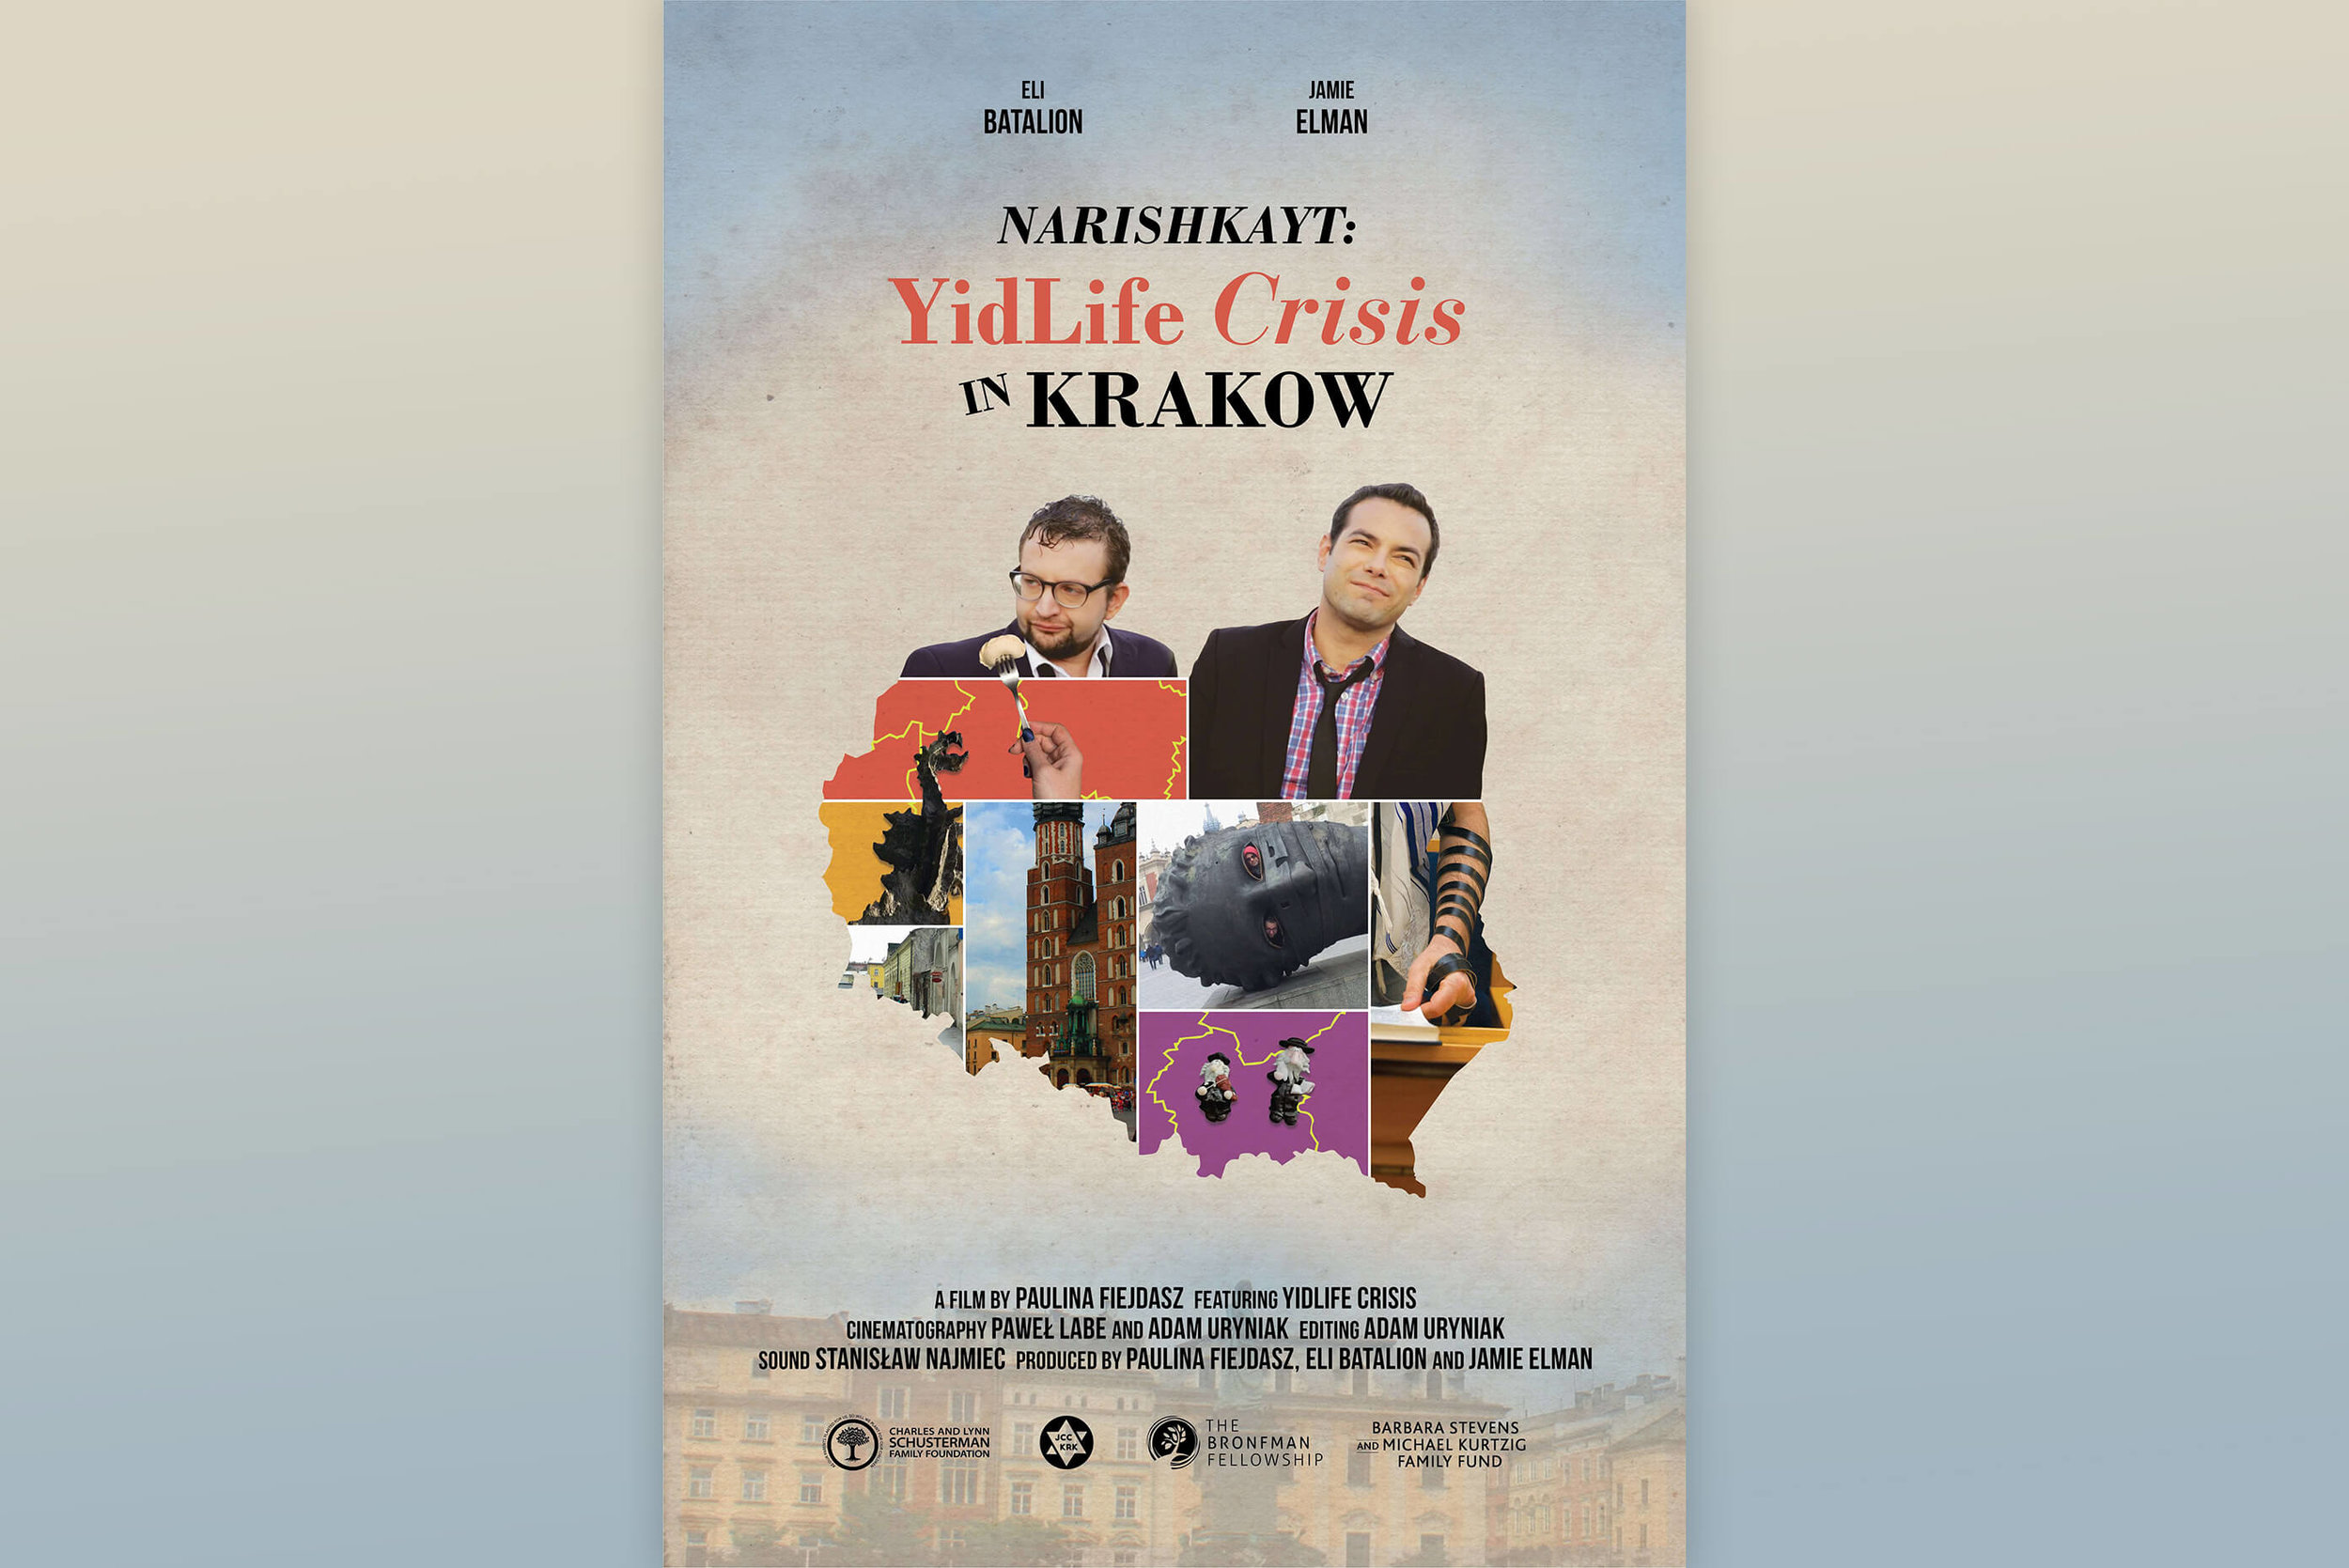 "Narishkayt:YidLife Crisis in Krakow - Narishkayt (Yiddish for ""silliness"") follows YidLife Crisis on tour as they bring their show to Krakow and explore the dynamic and delicate intersections of Polish and Jewish life in the past and present."